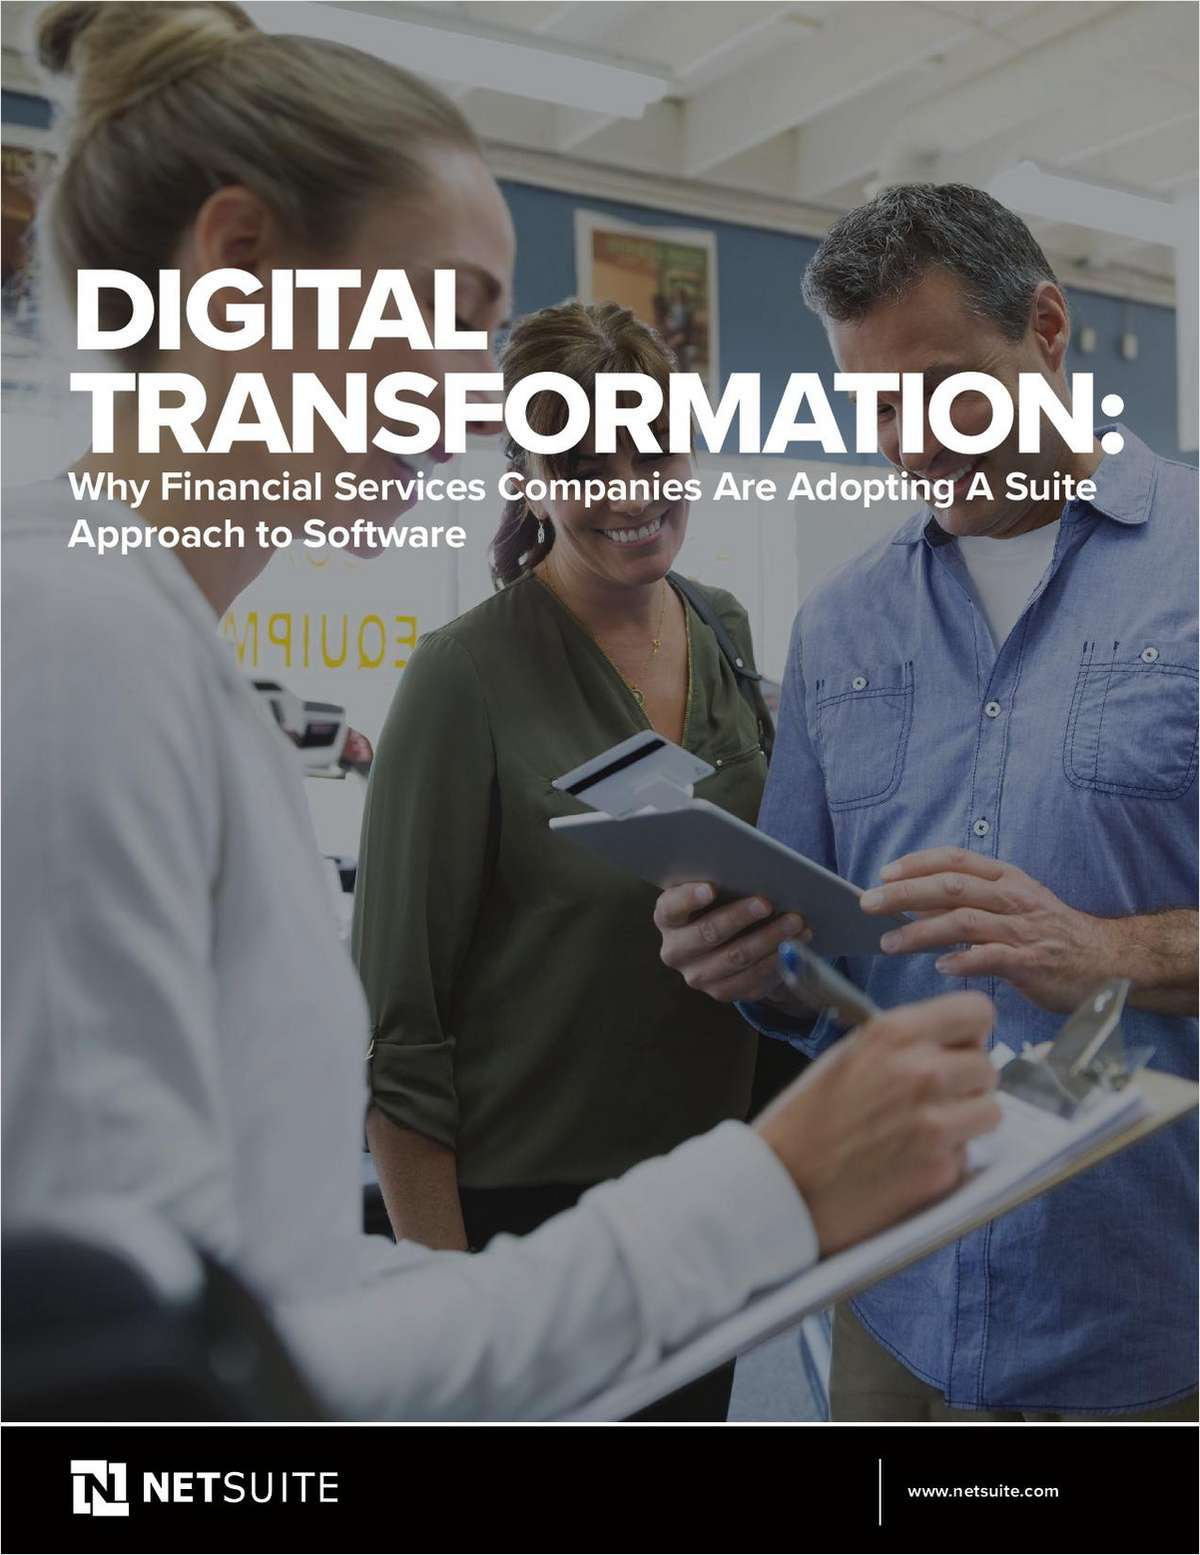 Digital Transformation: Why Financial Services Companies Are Adopting A Suite Approach to Software